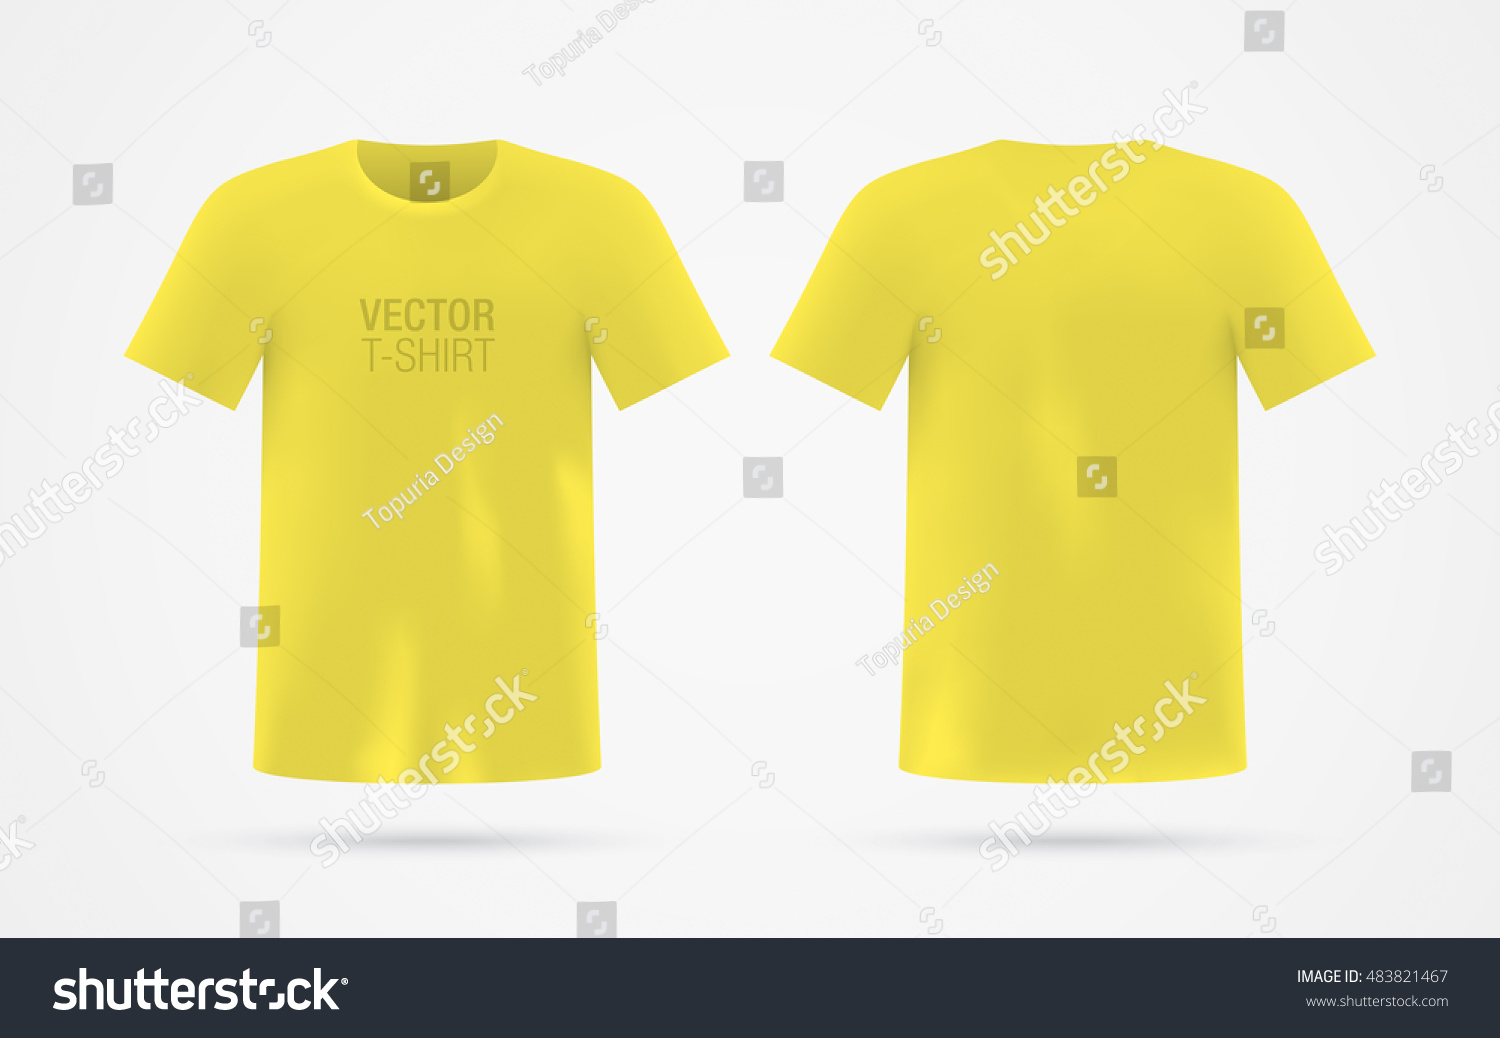 Mens Yellow Vector Tshirt Template Isolated Image Vectorielle De